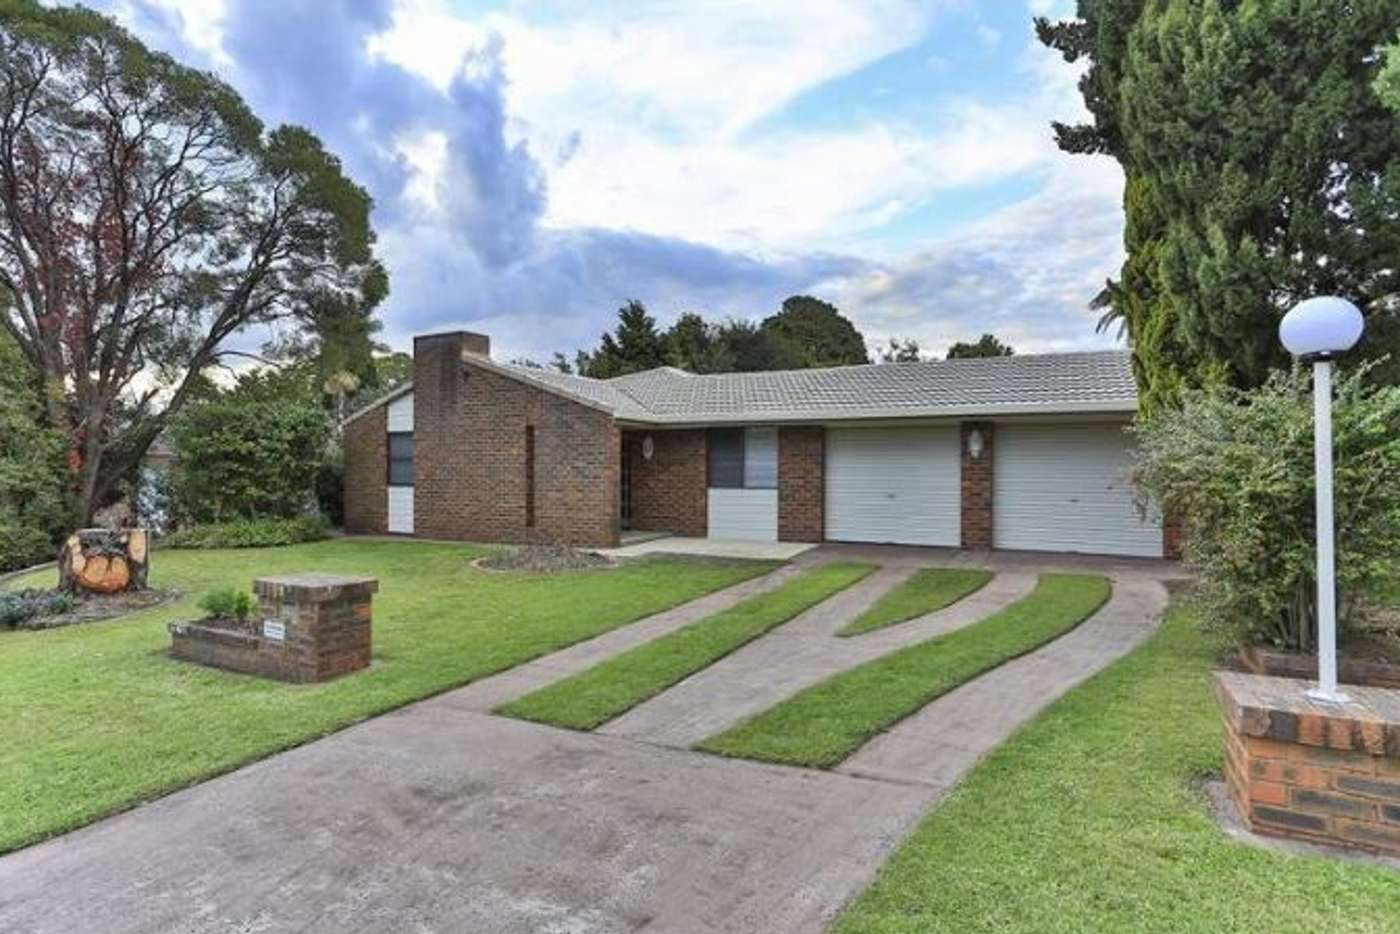 Main view of Homely house listing, 9 Brunner Street, Rangeville QLD 4350